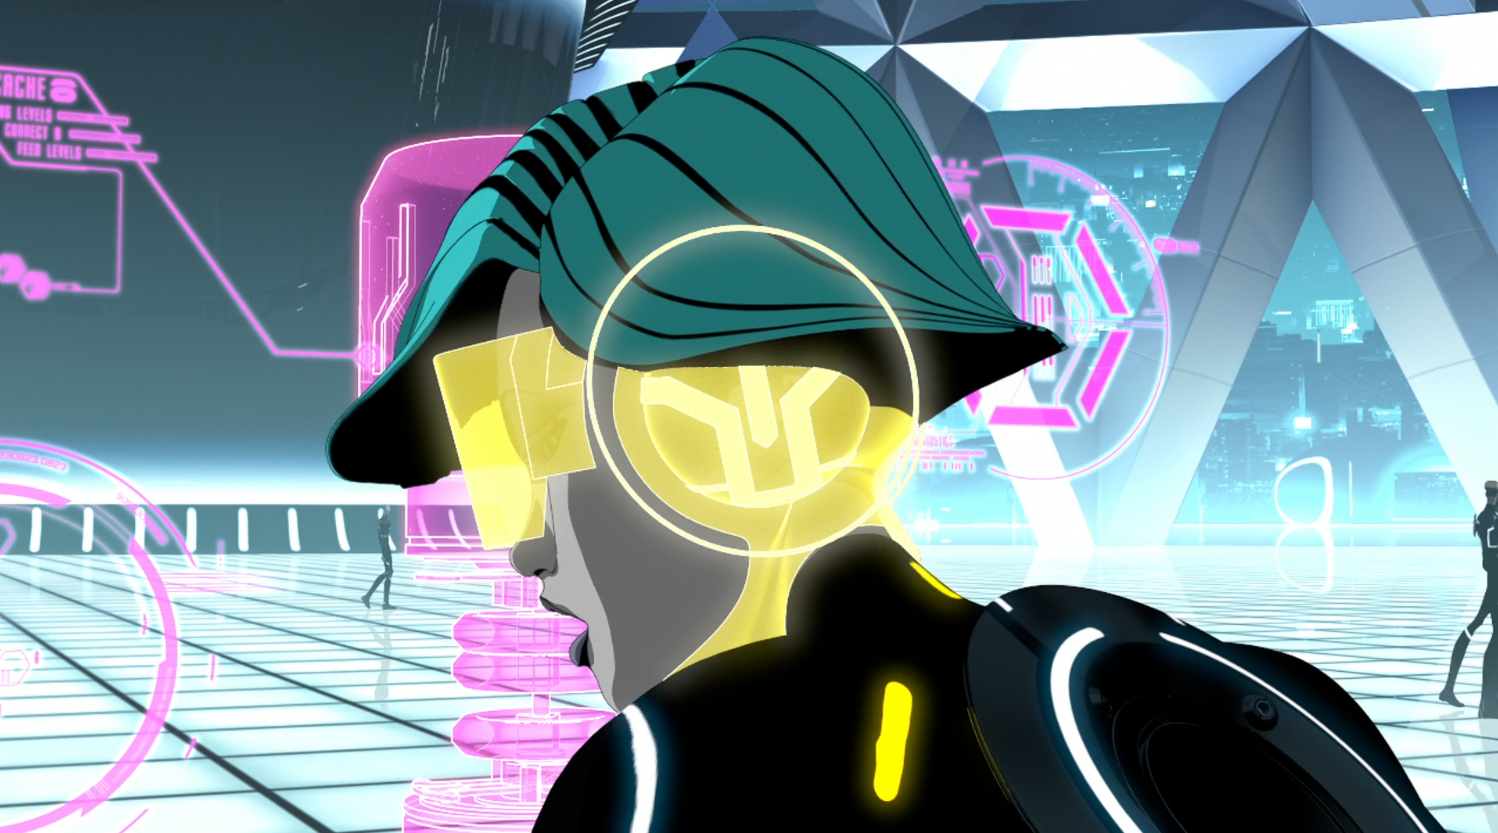 Mara working in Able's shop - Terminal - Terminal - Tron: Uprising